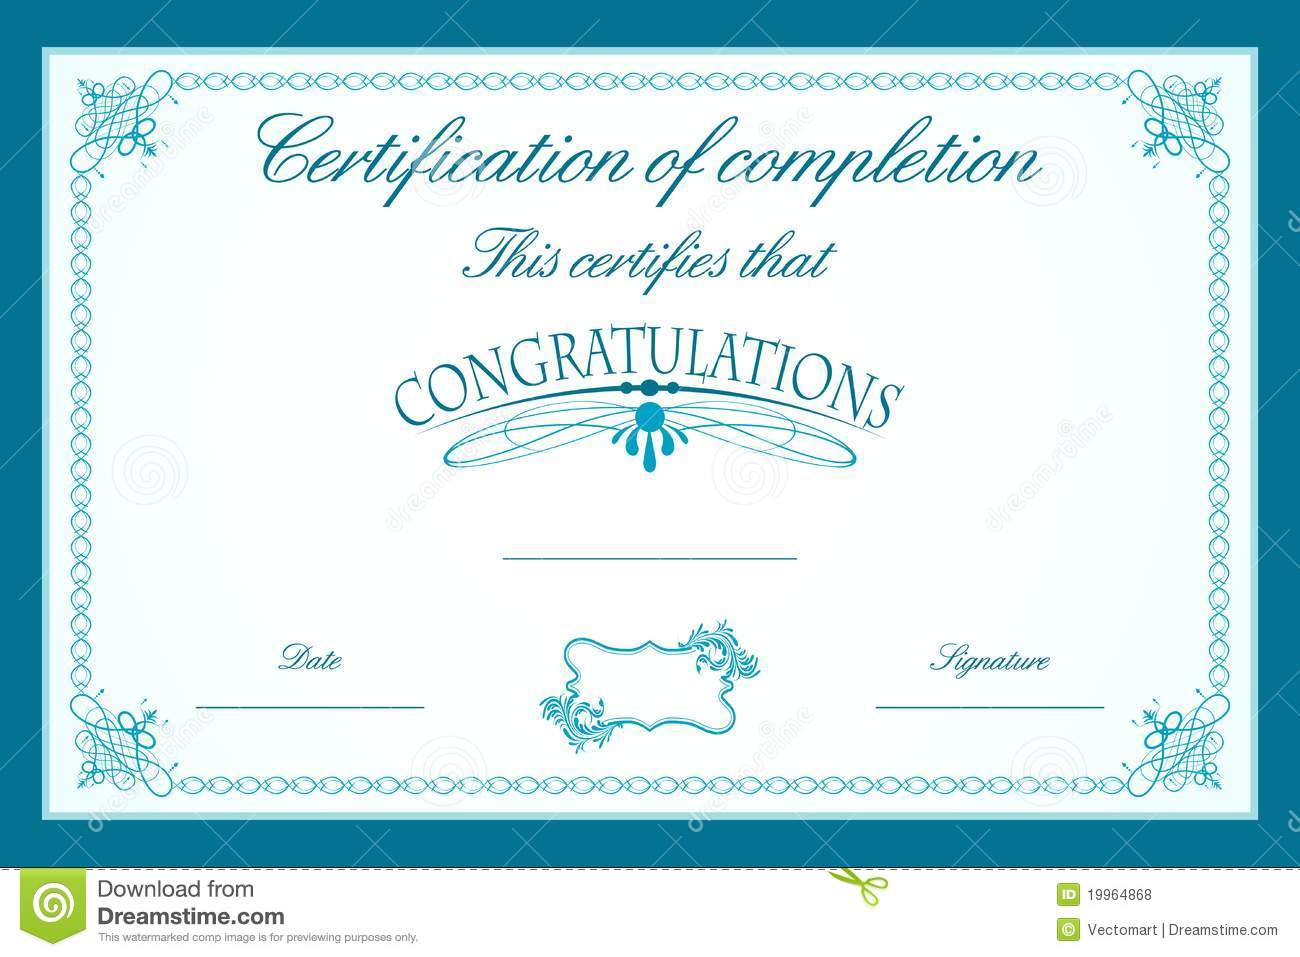 Template Of A Certificate Image Collections Templates Example Template Of A  Certificate Image Collections Templates Example  Blank Certificate Format